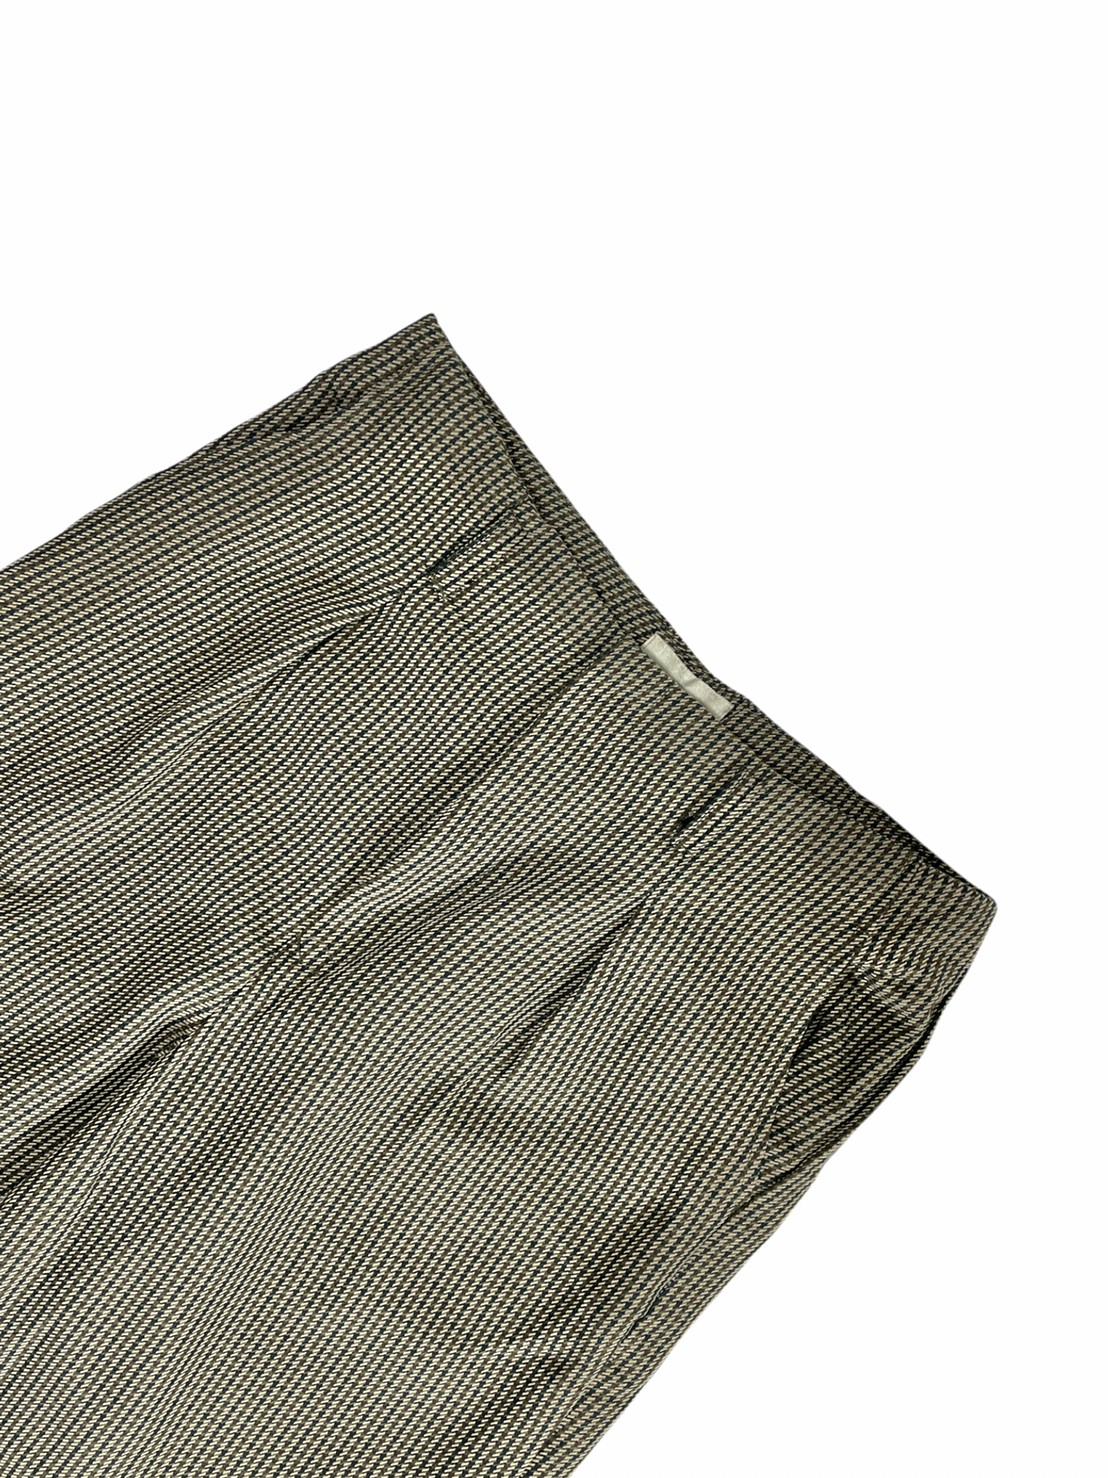 Ane Ivy pants (Houndstooth)